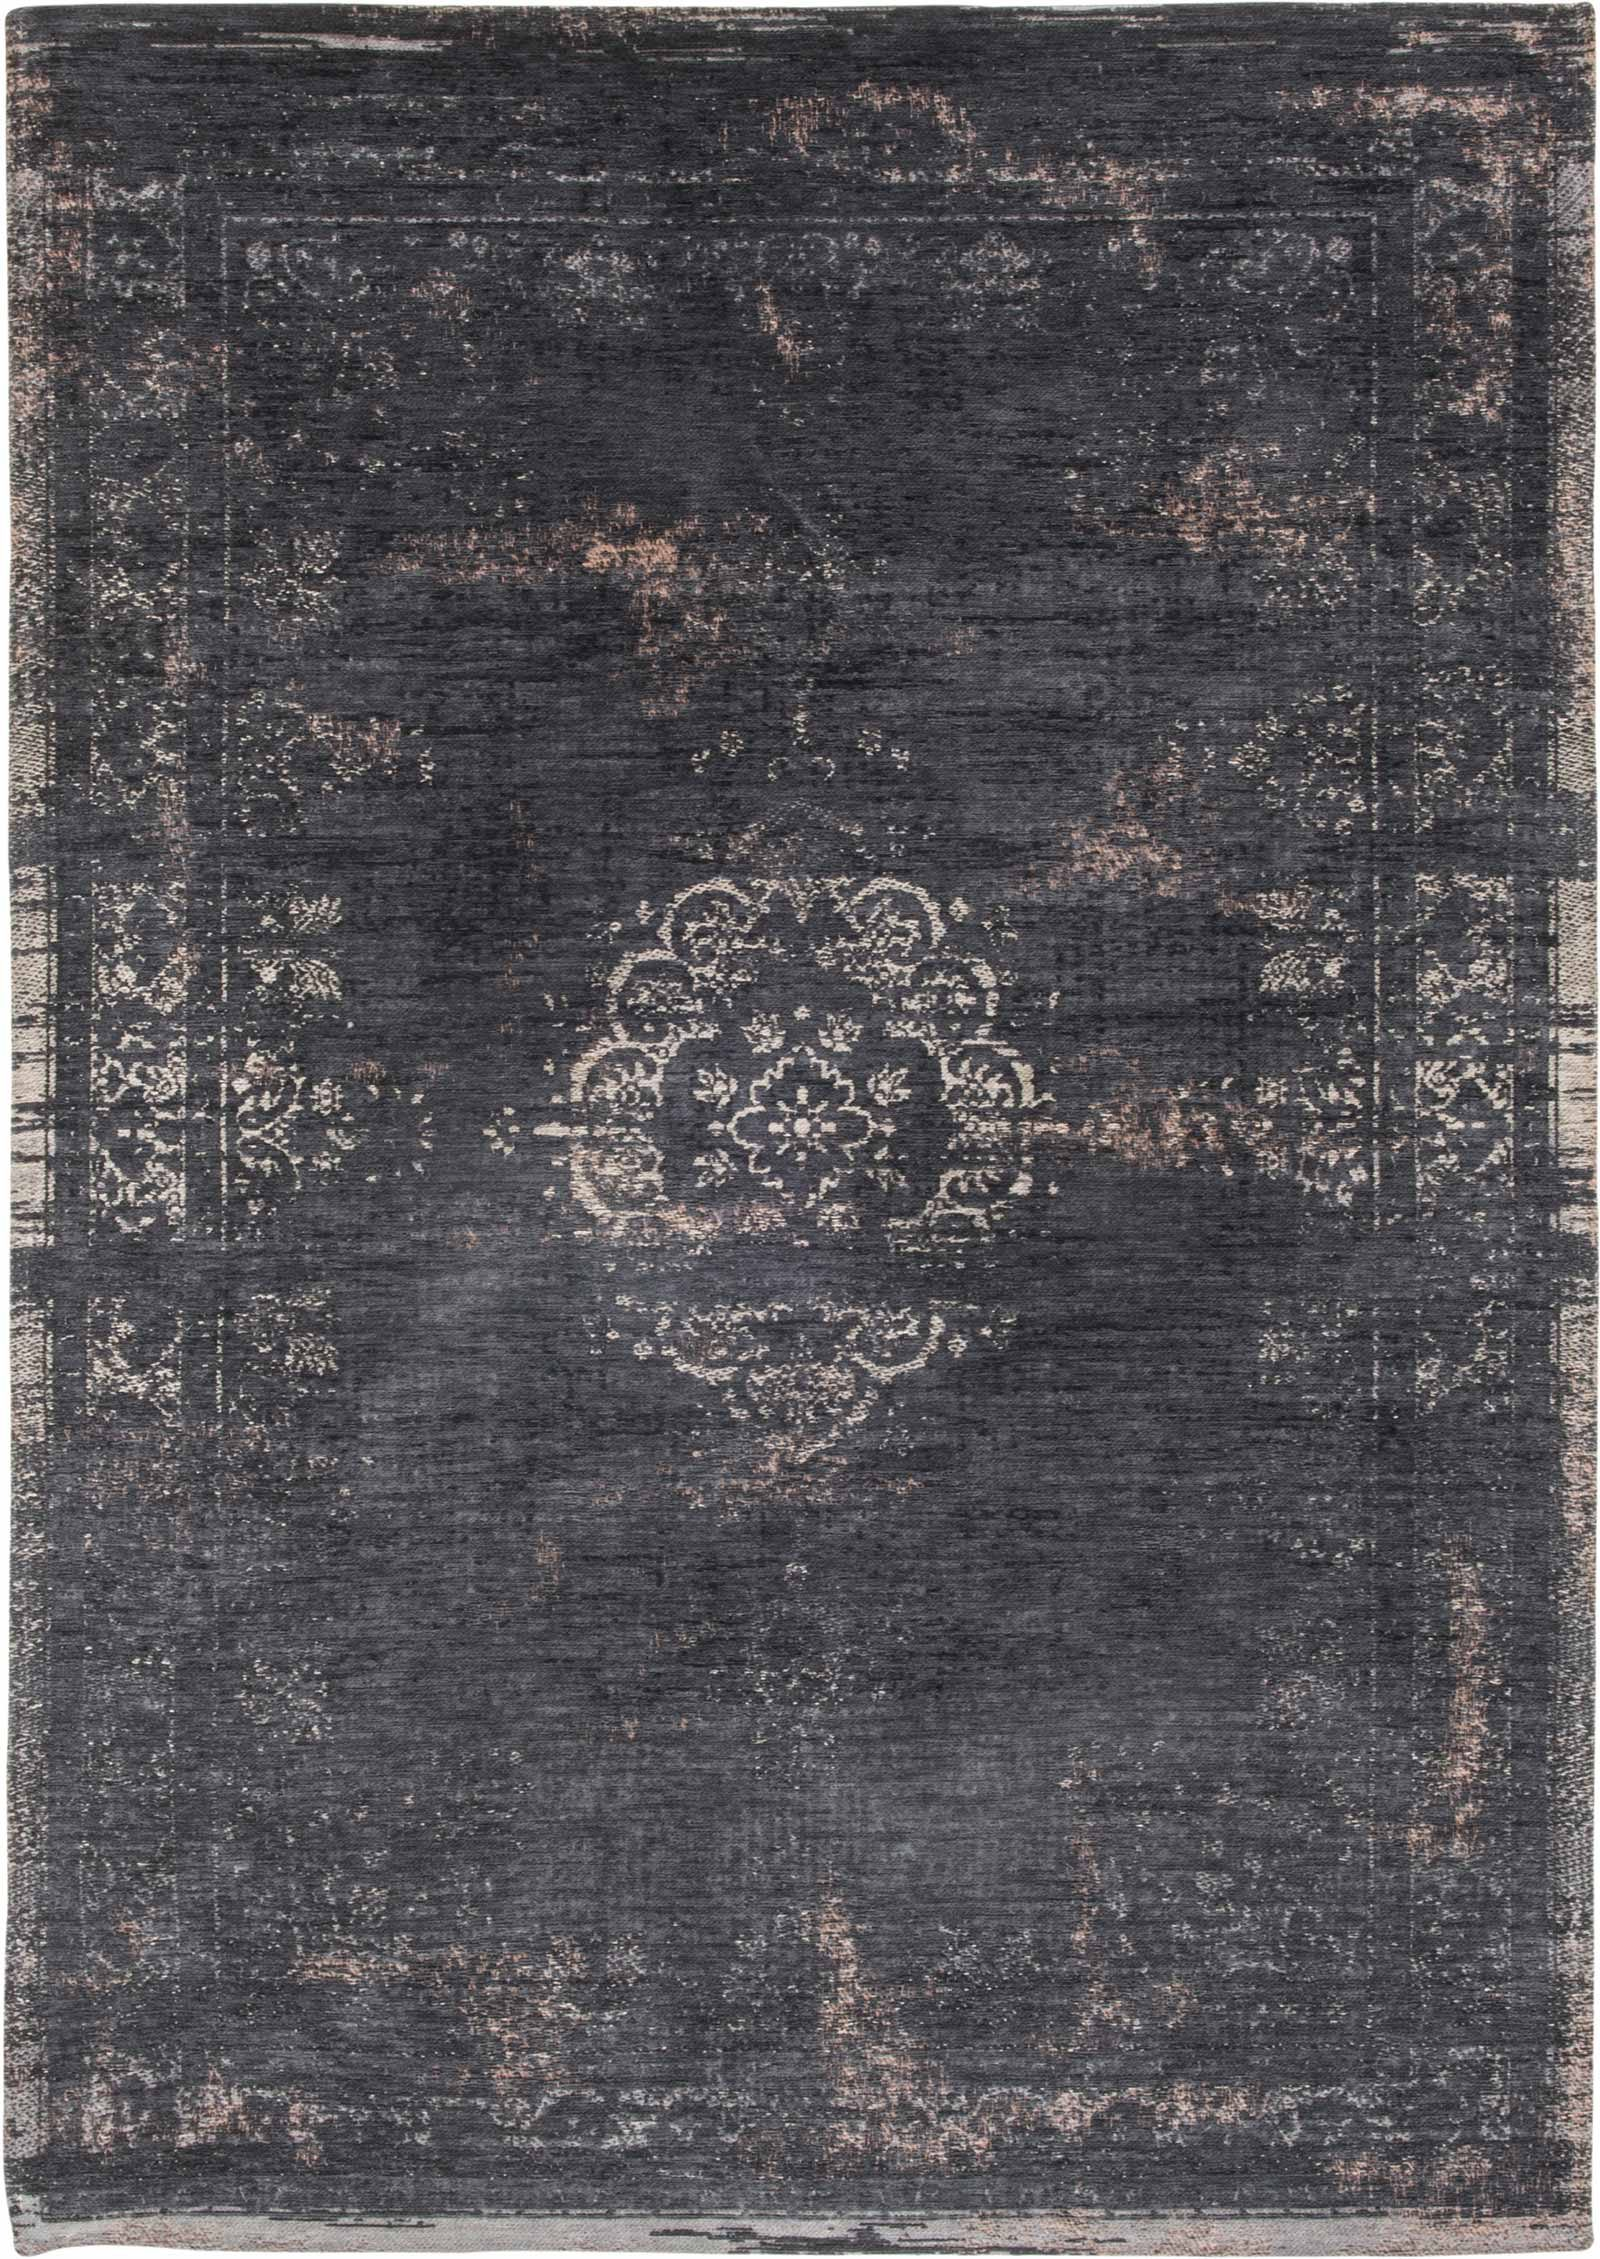 rug Louis De Poortere LX8263 Fading World Medaillon Mineral Black